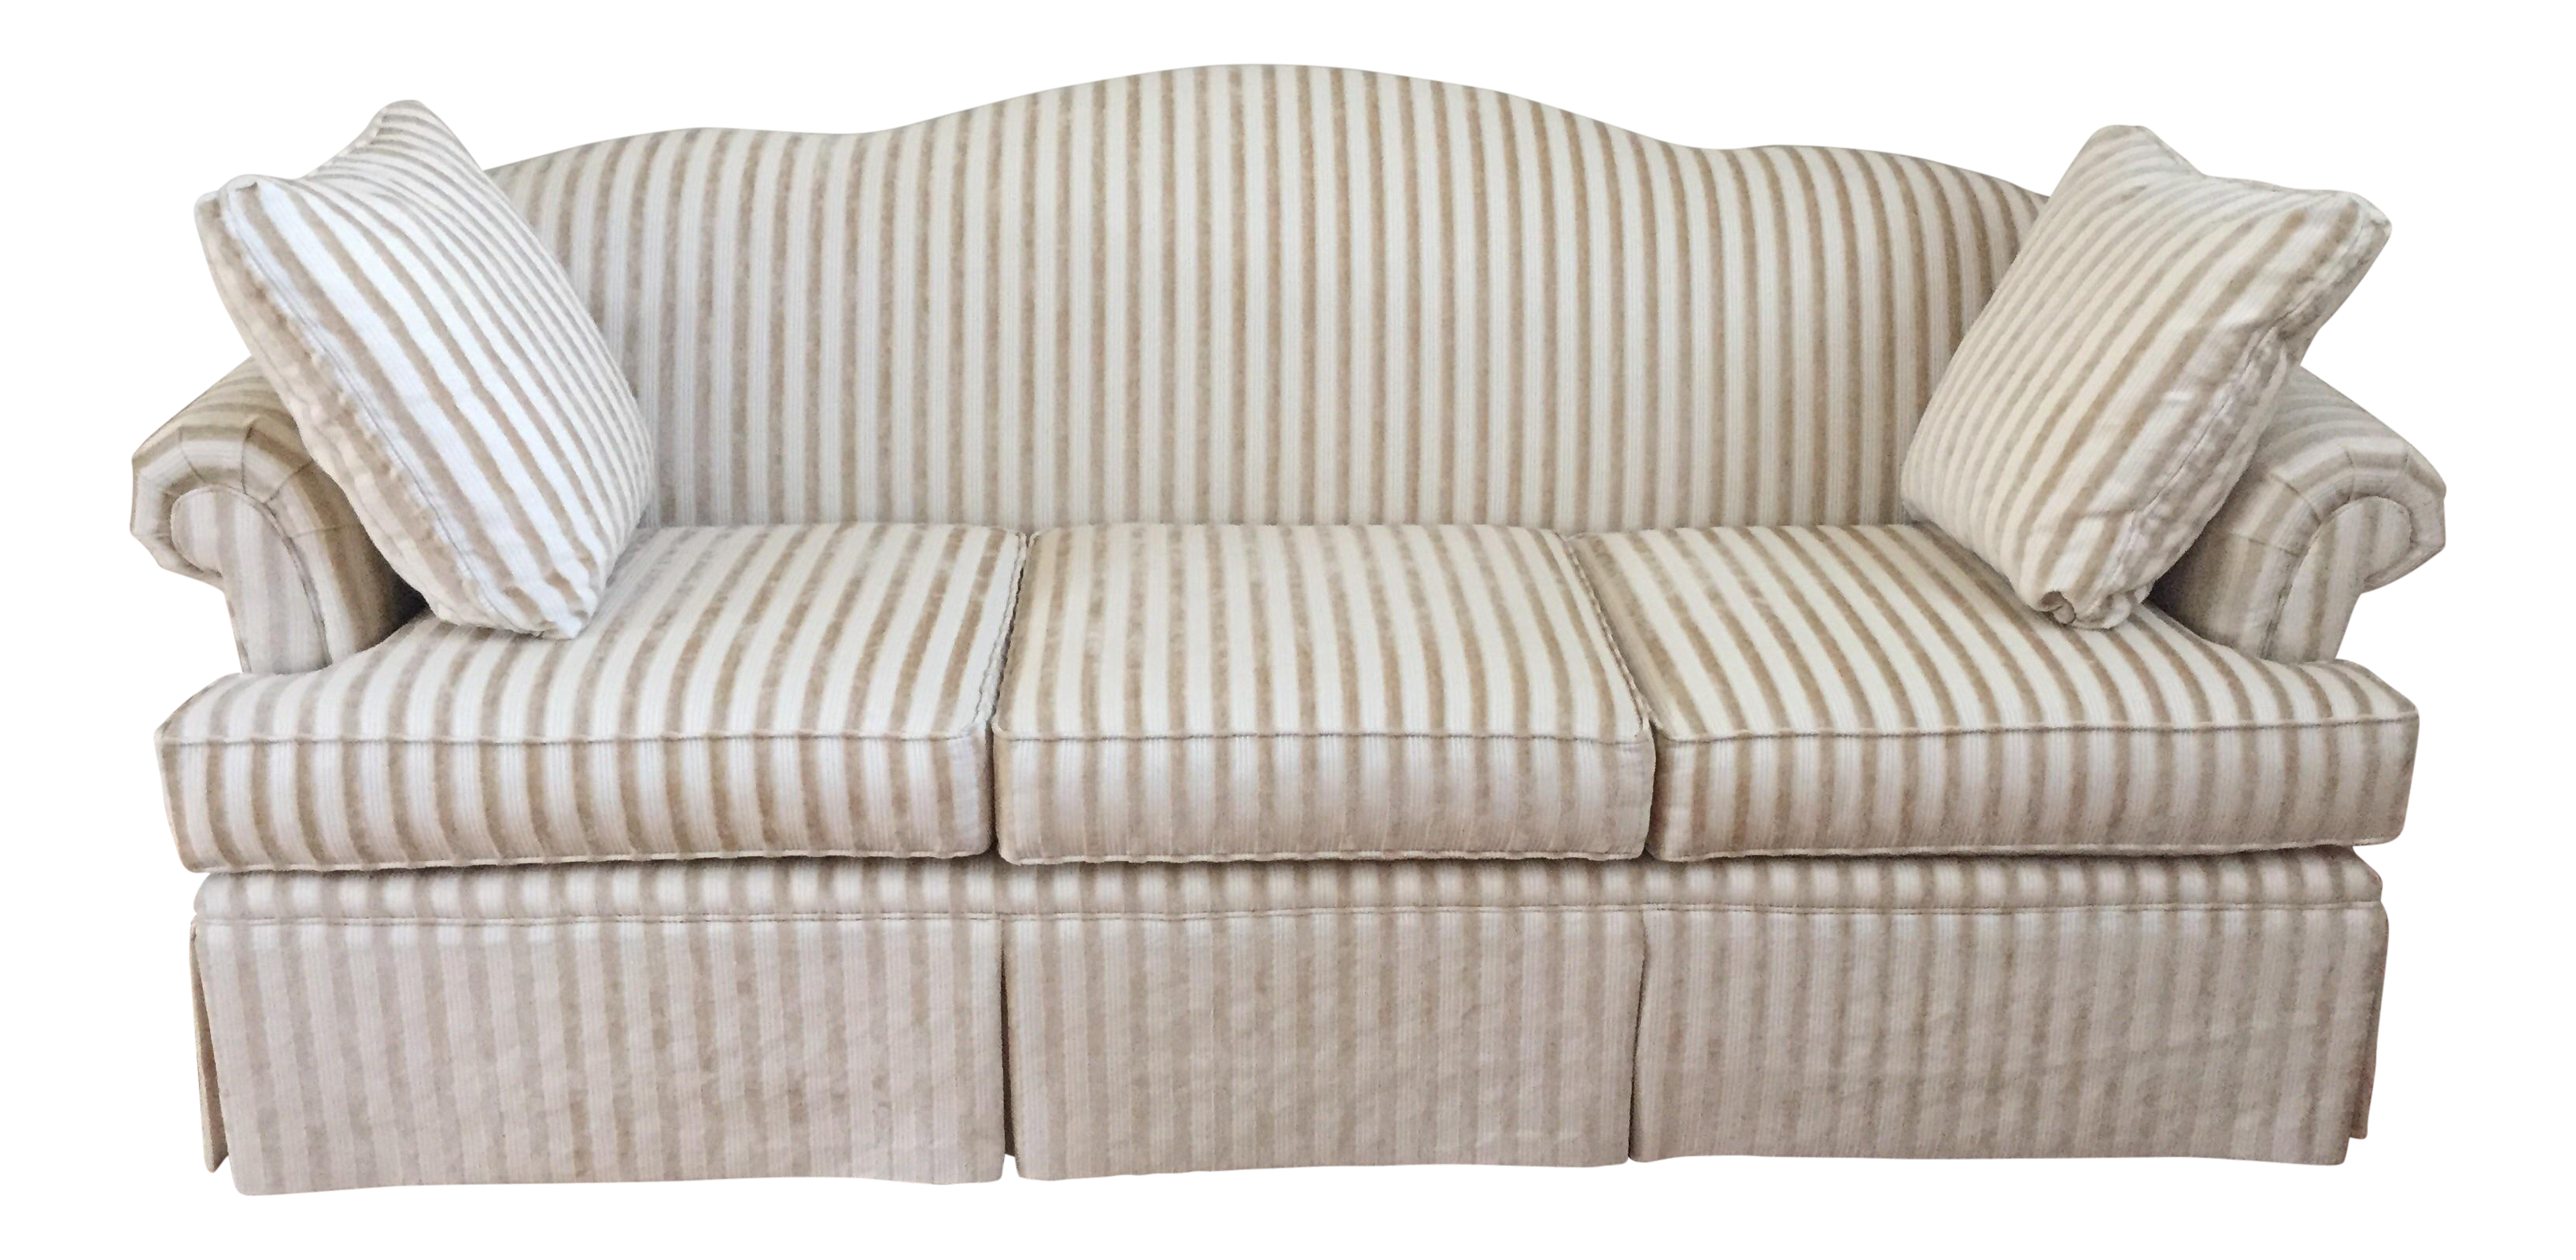 Pennsylvania House Cream Sofa